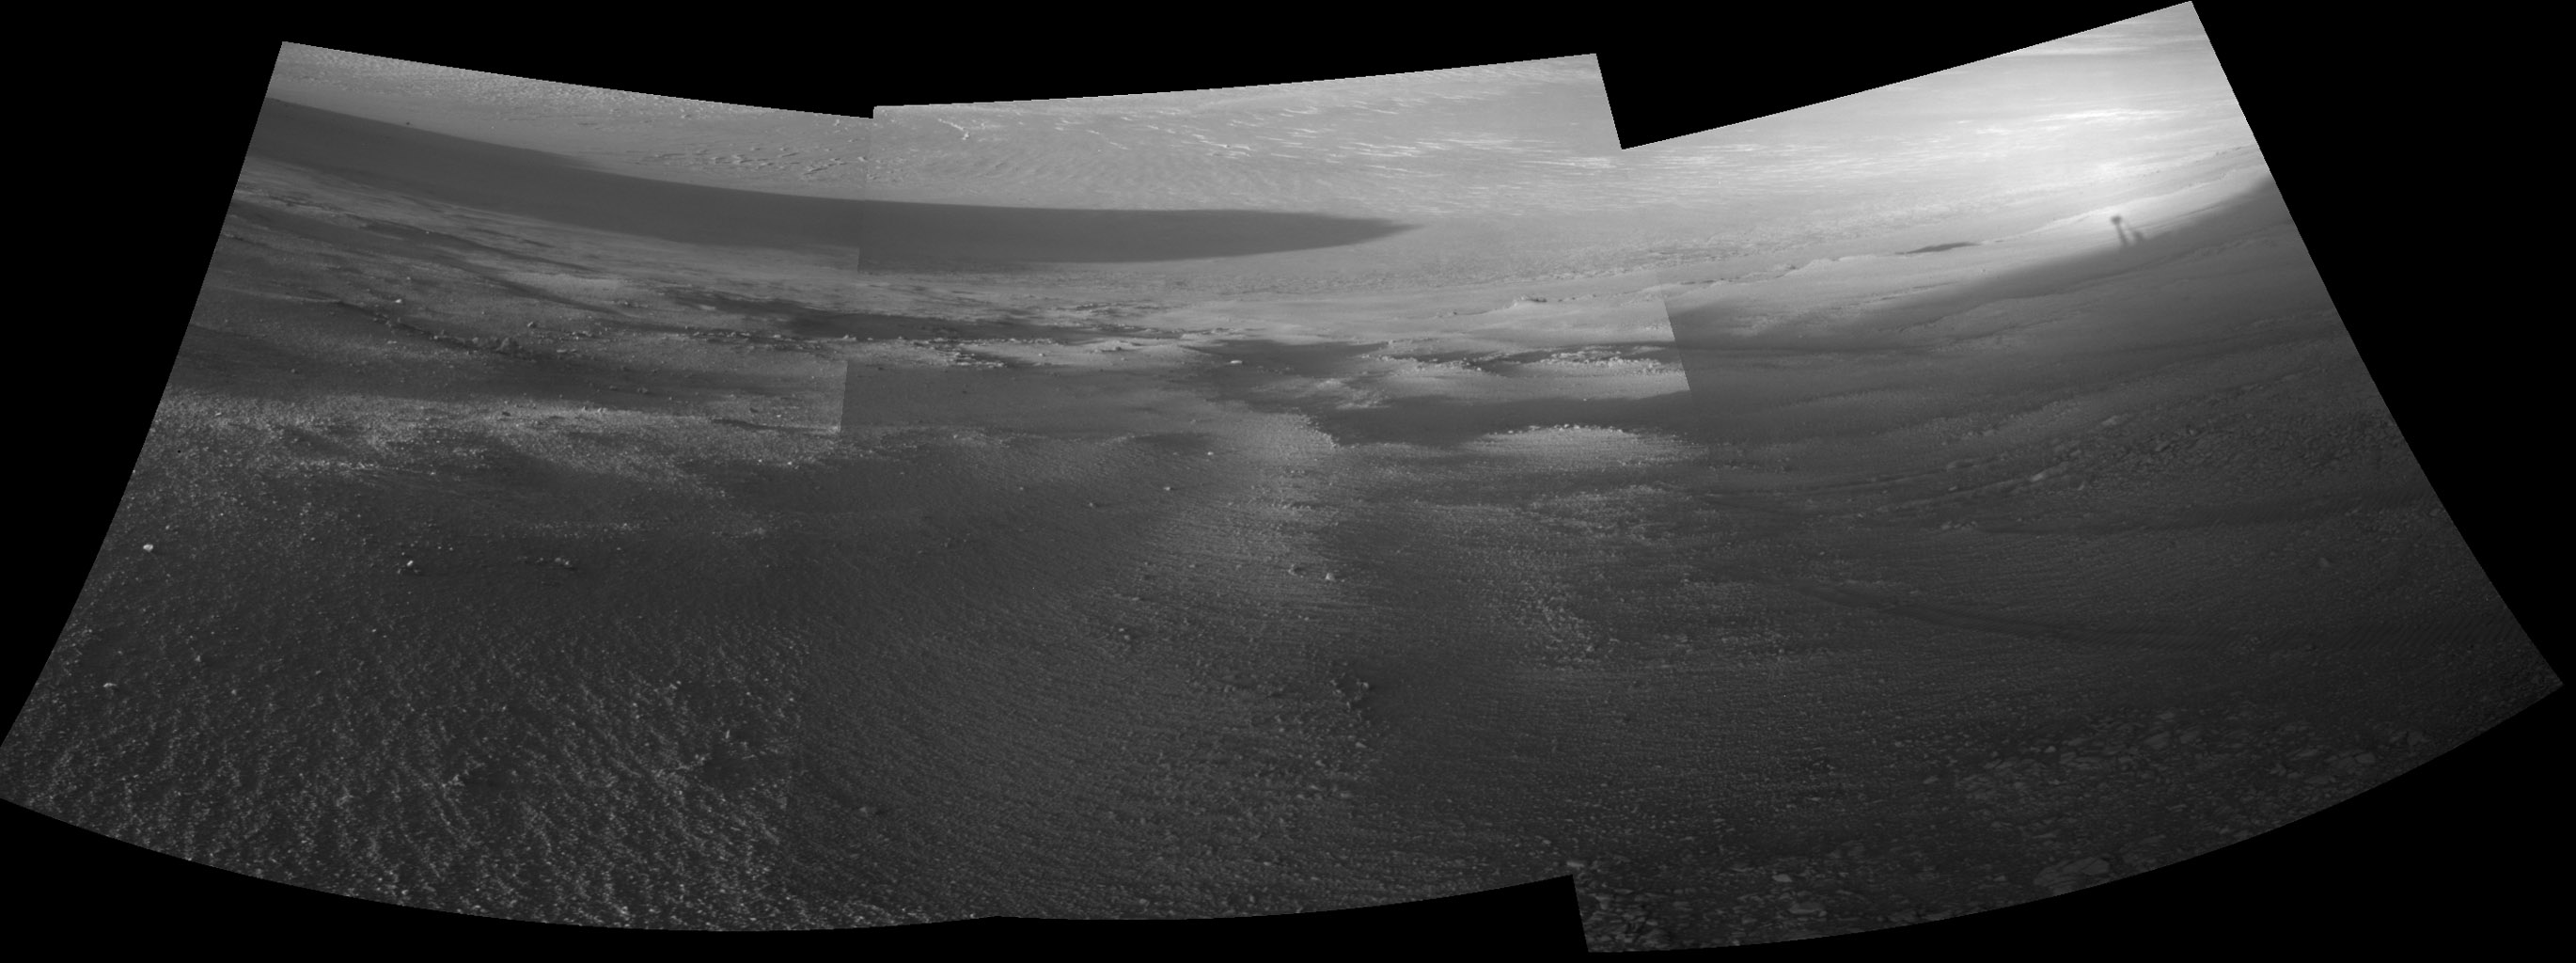 Late-afternoon shadows include one cast by the rover itself in this look toward the floor of Endeavour Crater by NASA's Mars Exploration Rover Opportunity. The rover recorded this scene on Nov. 11, 2017.